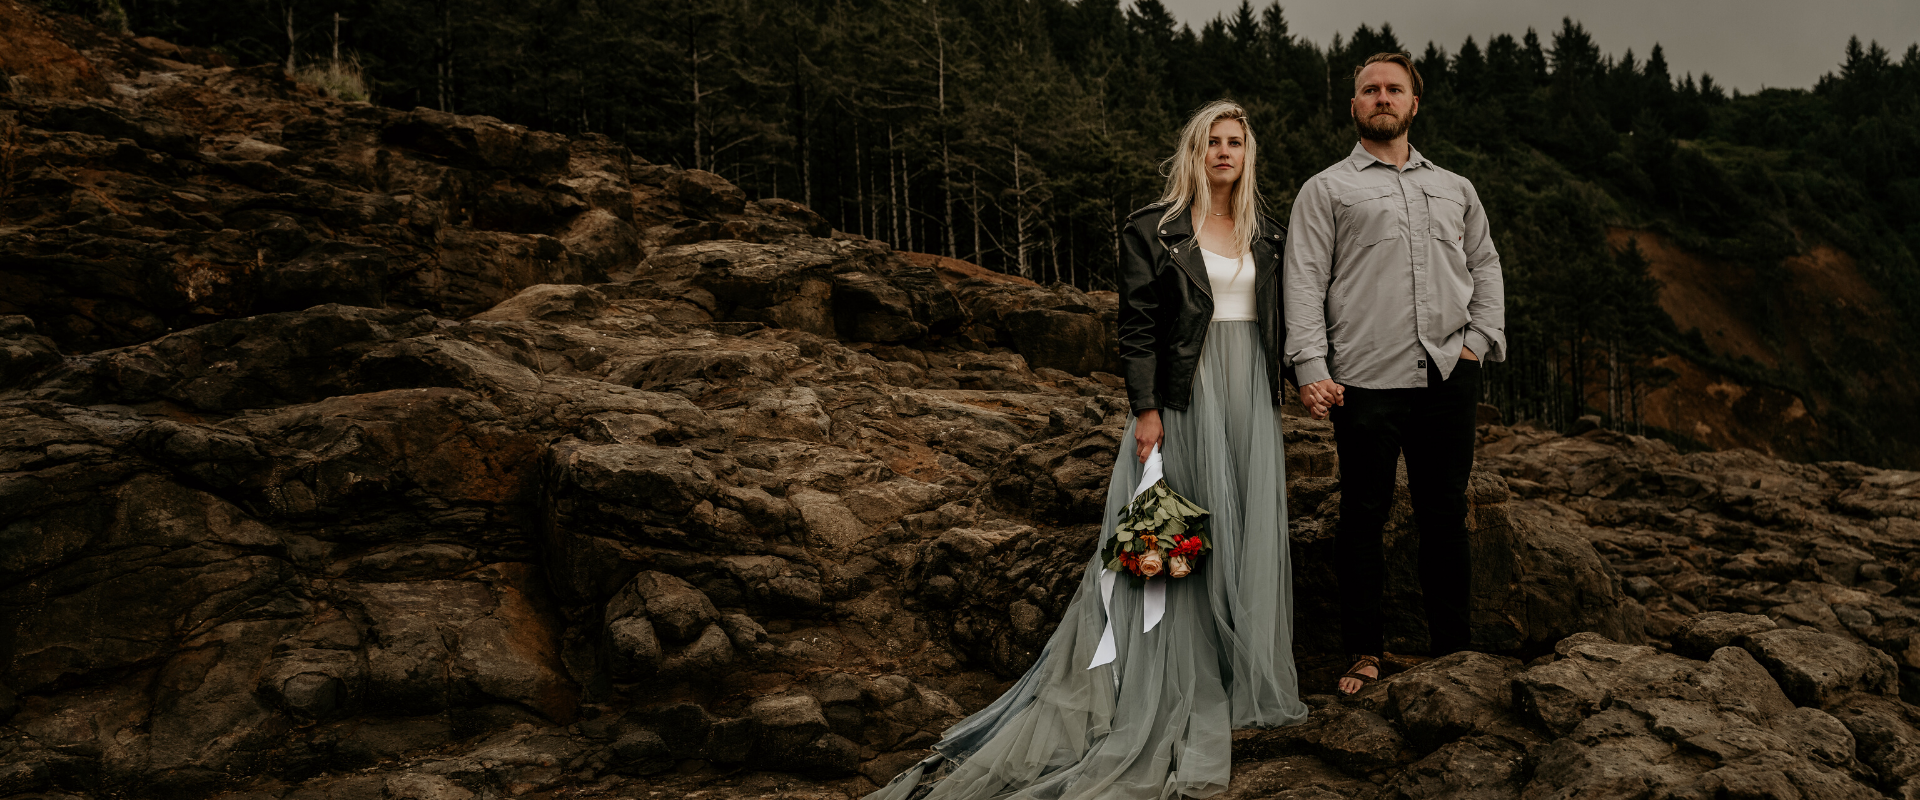 Caitlin + Cliff | Oregon, Oregon | The Oregon Coast